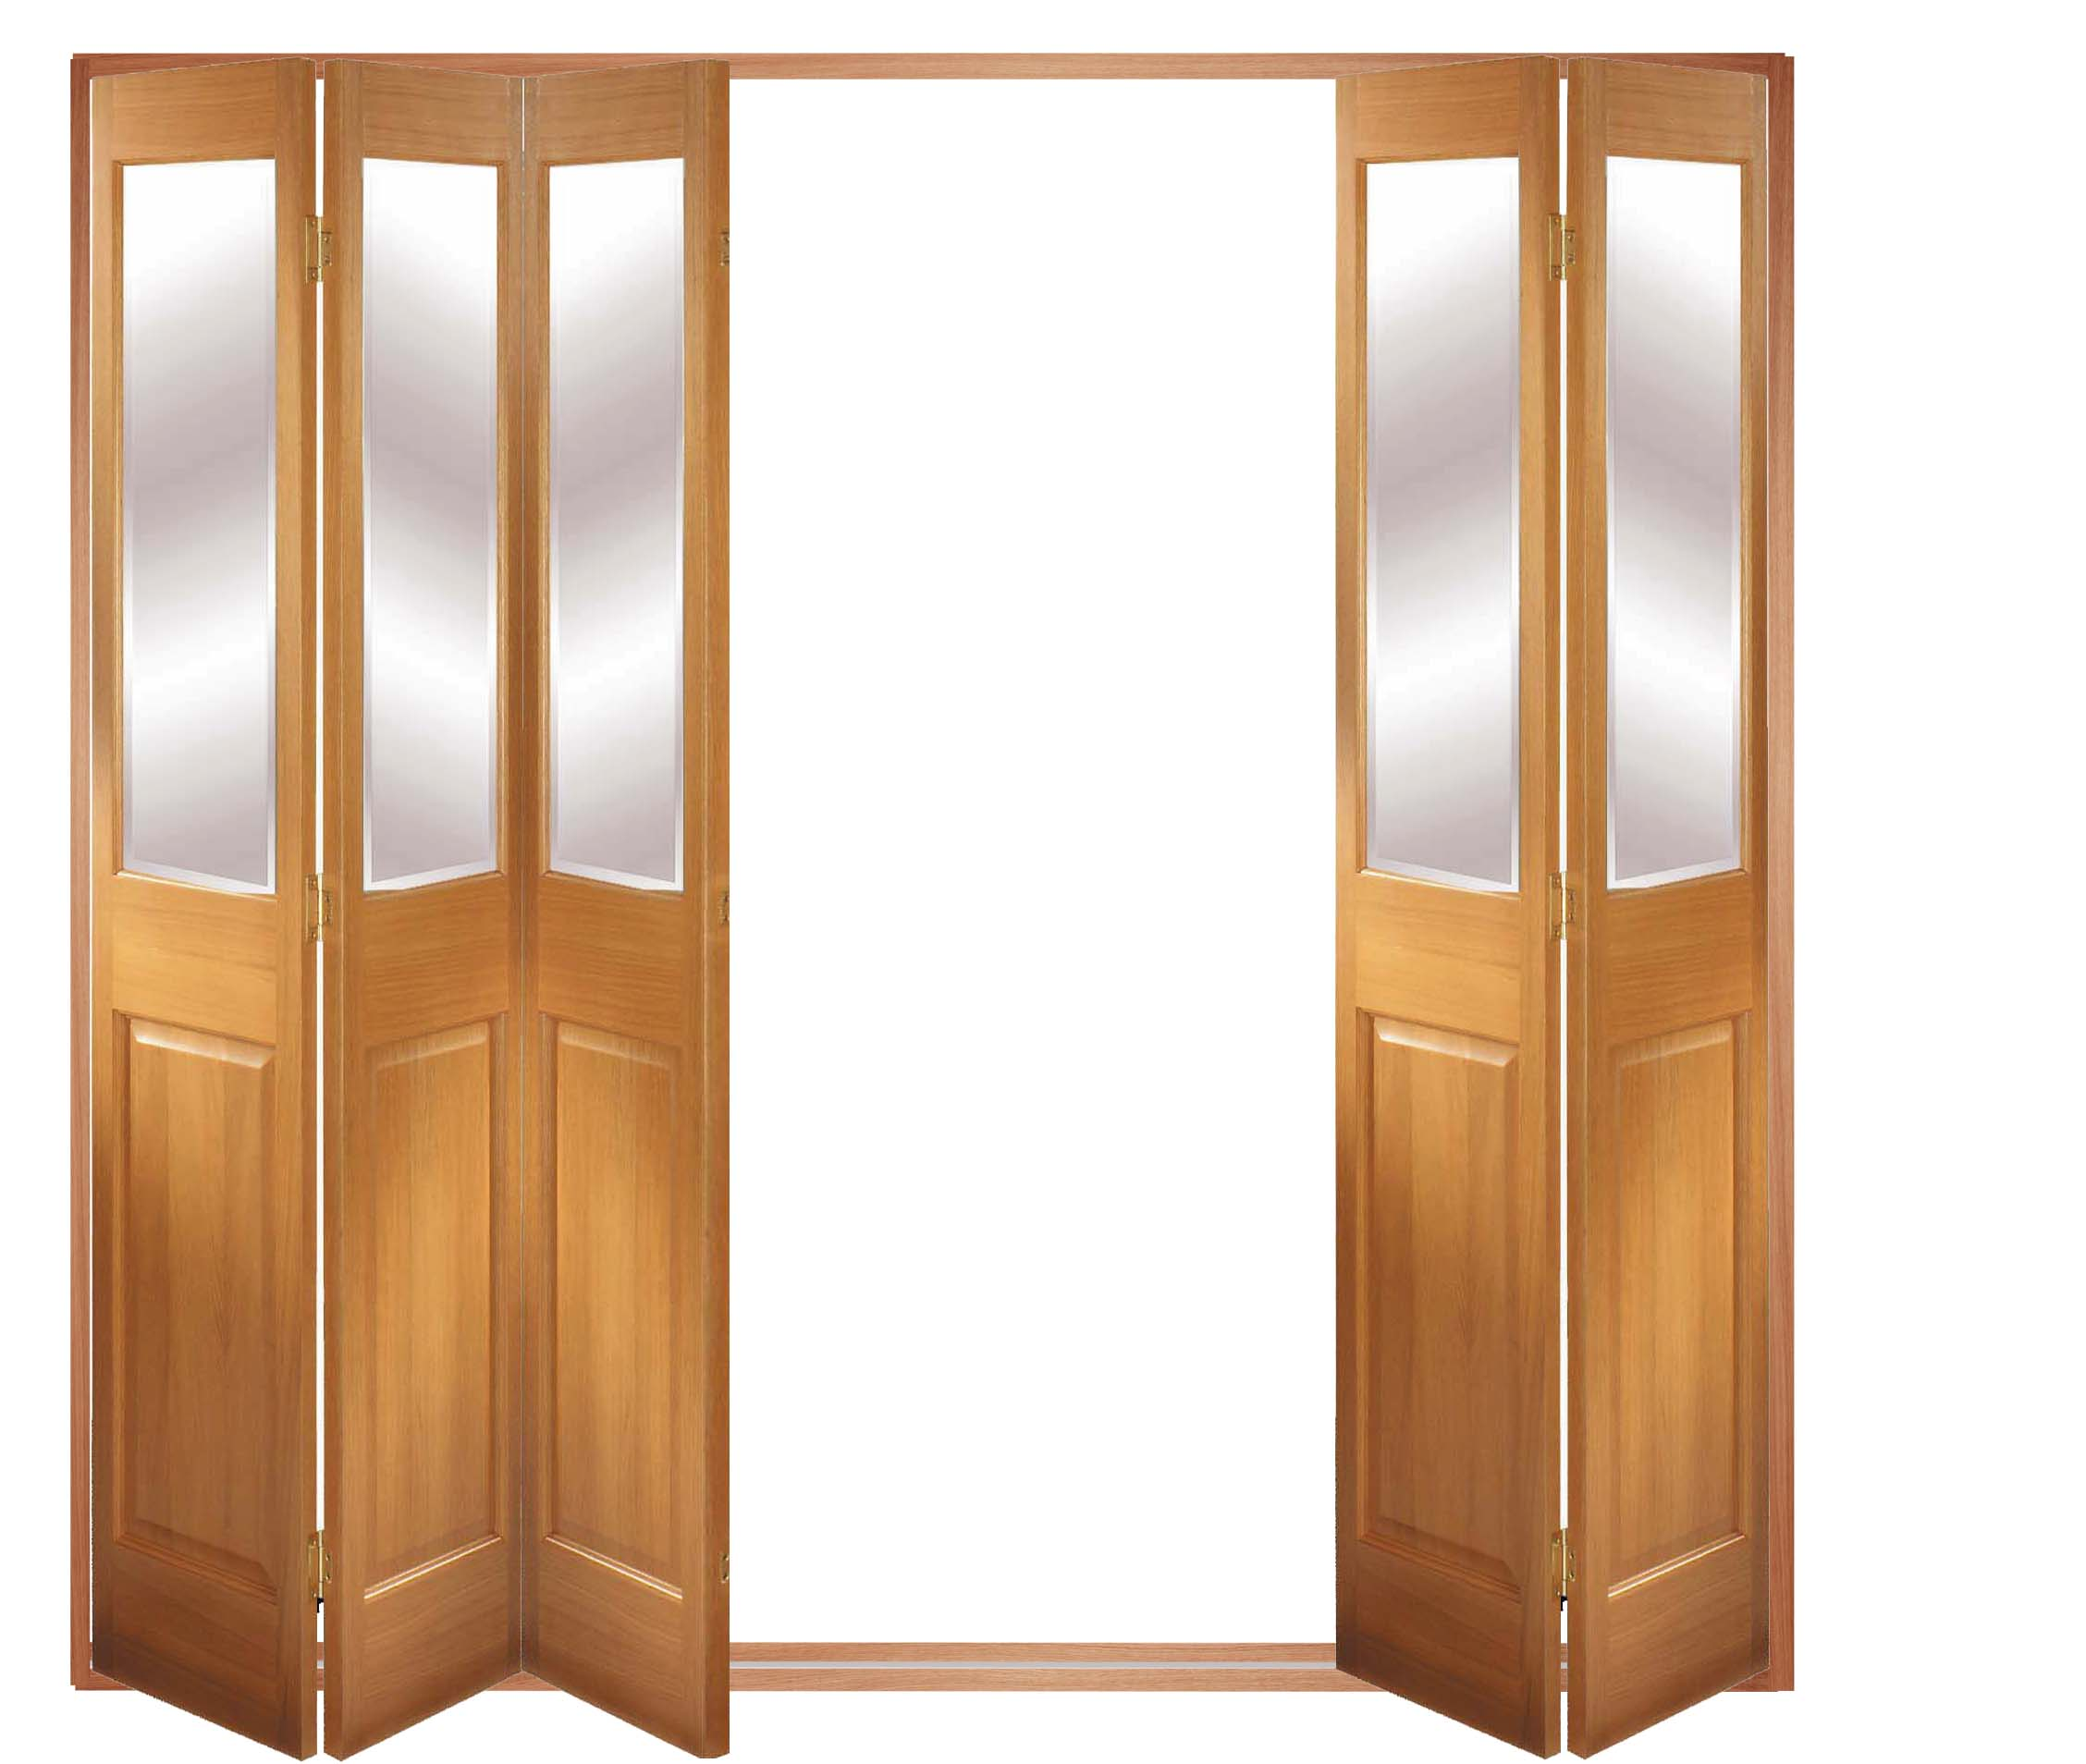 Reasons to install interior sliding folding doors for Pocket screens sliding doors